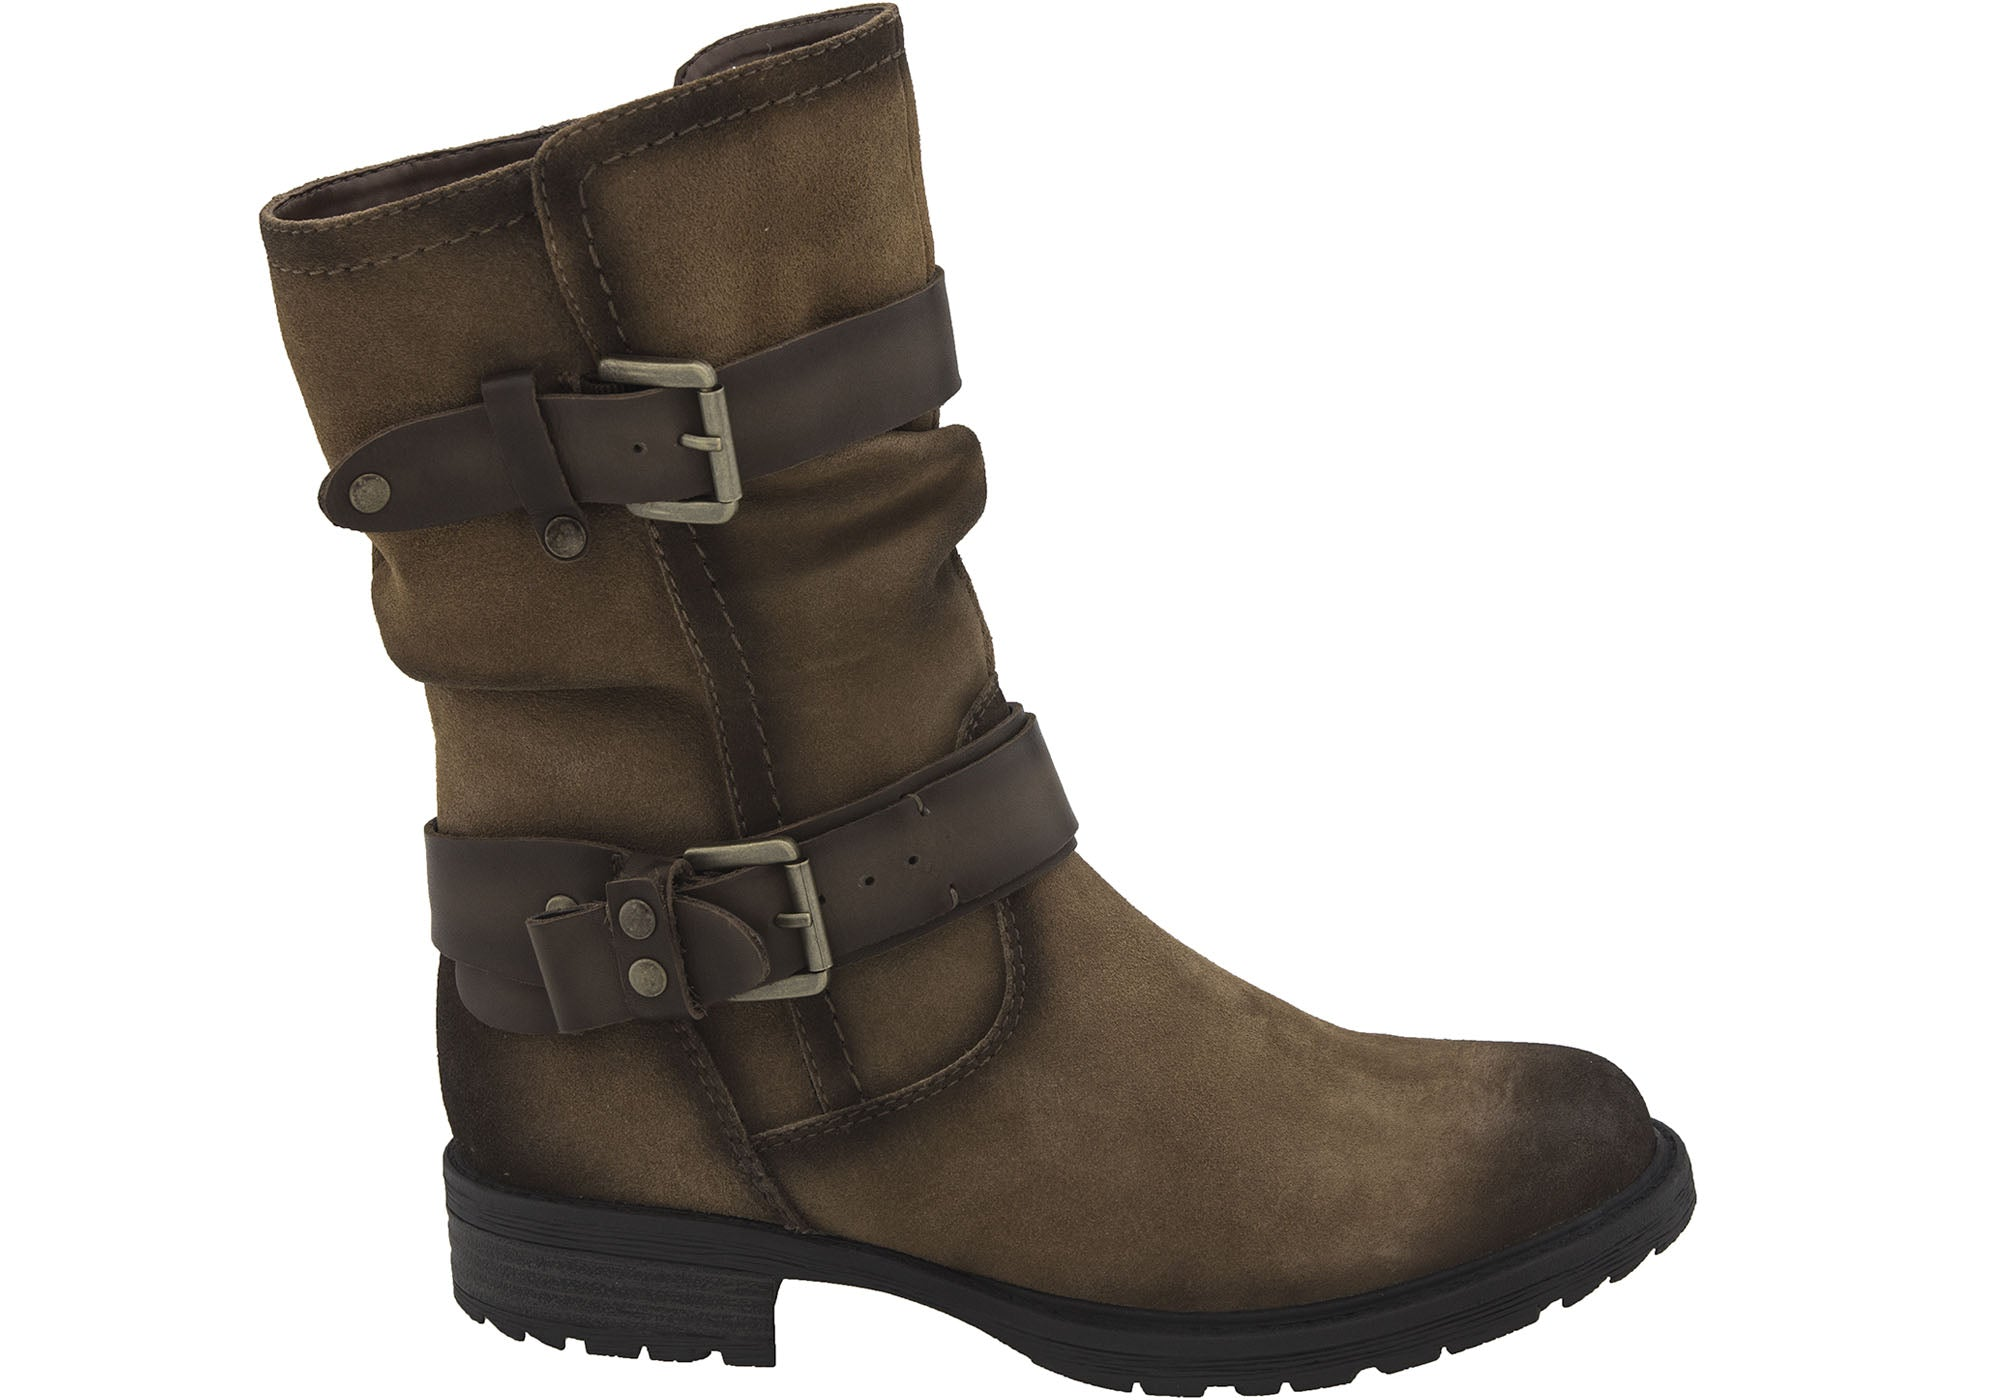 25fa723e2bec ... Womens Comfortable Low Heel Mid Calf Boots. Black Leather · Khaki ·  Brown ...